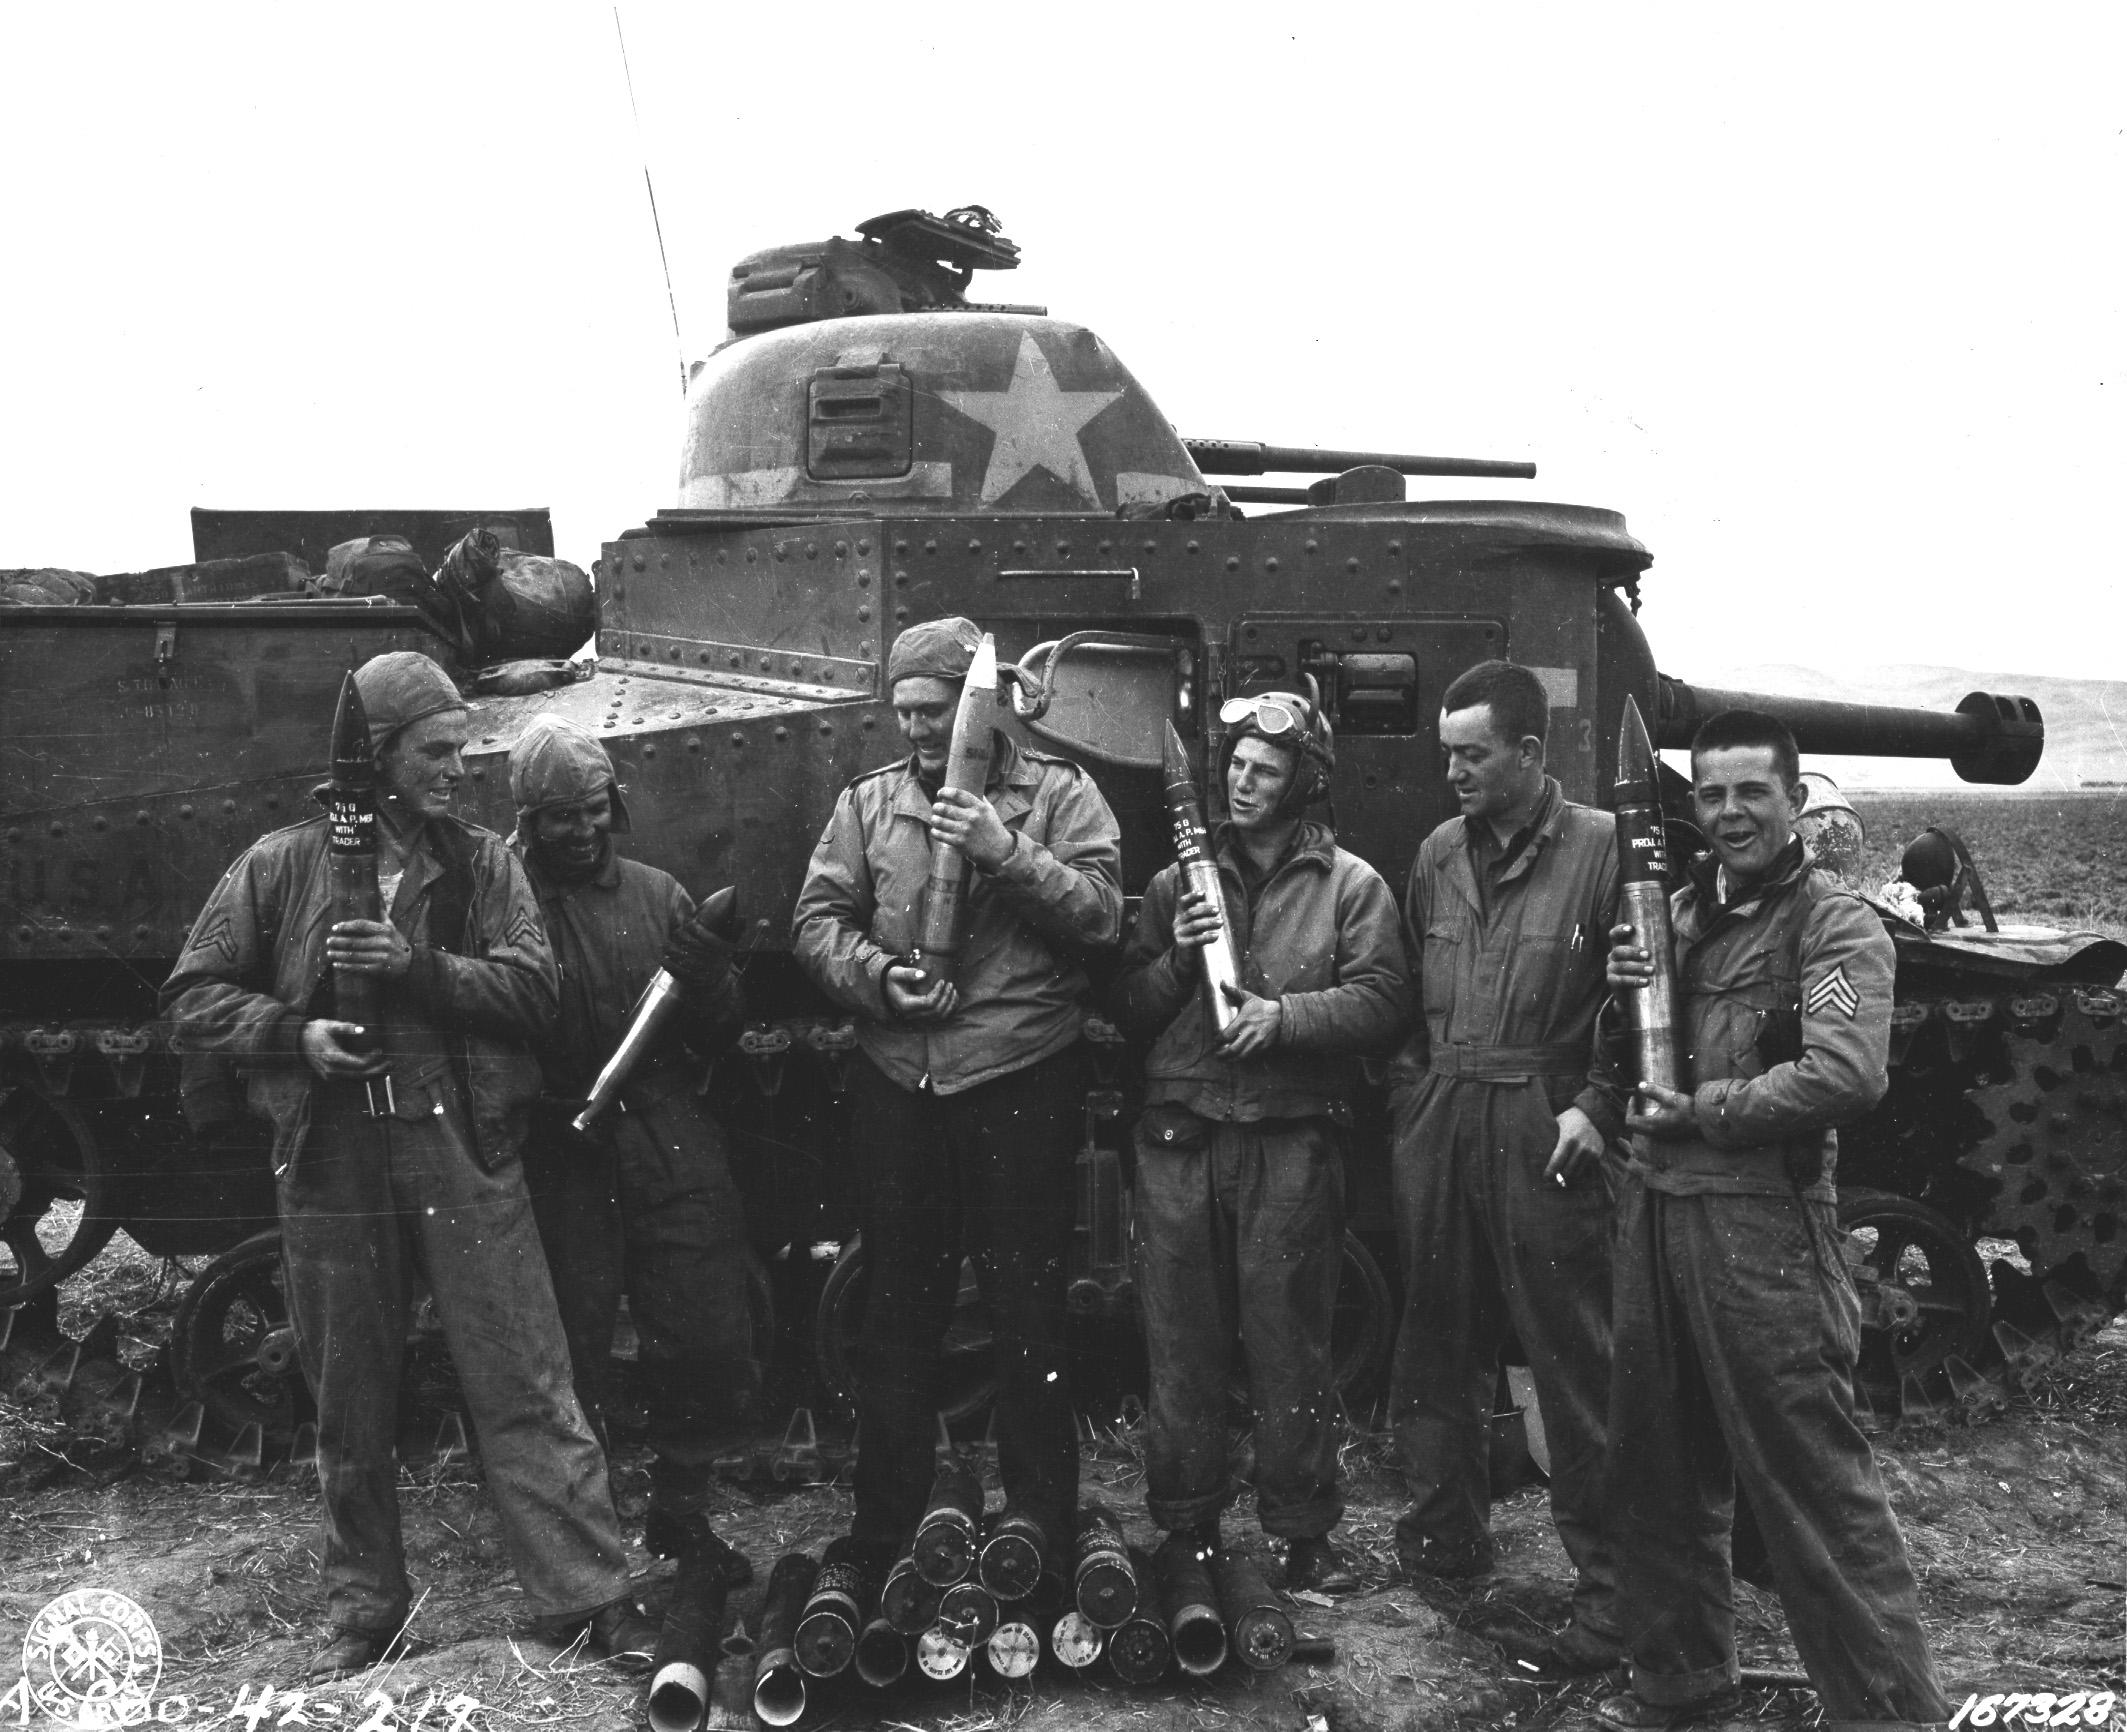 Crew of M3 Grant medium tank, US 13th Armored Regiment, Souk el Arba, Tunisia, 23 Nov 1942 (US Army Signal Corps photo)